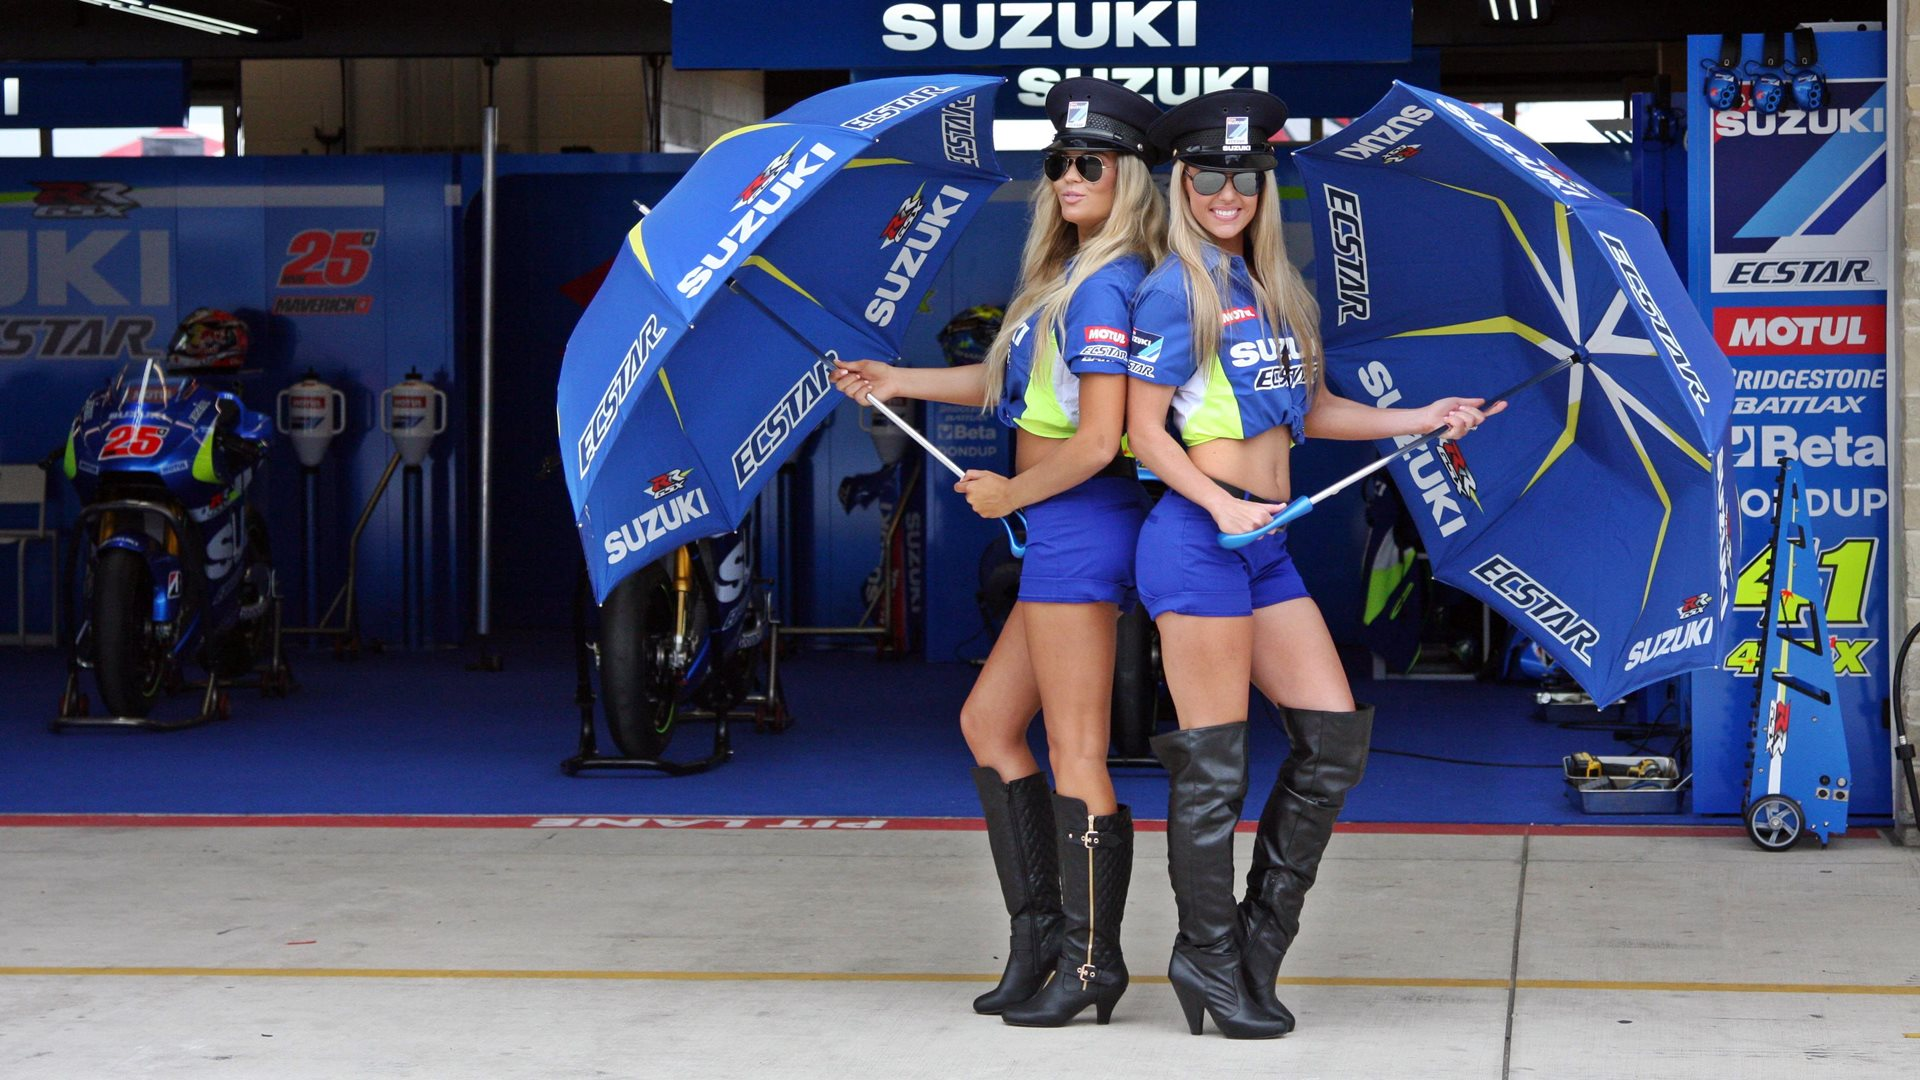 grid girls hd wallpapers - photo #39